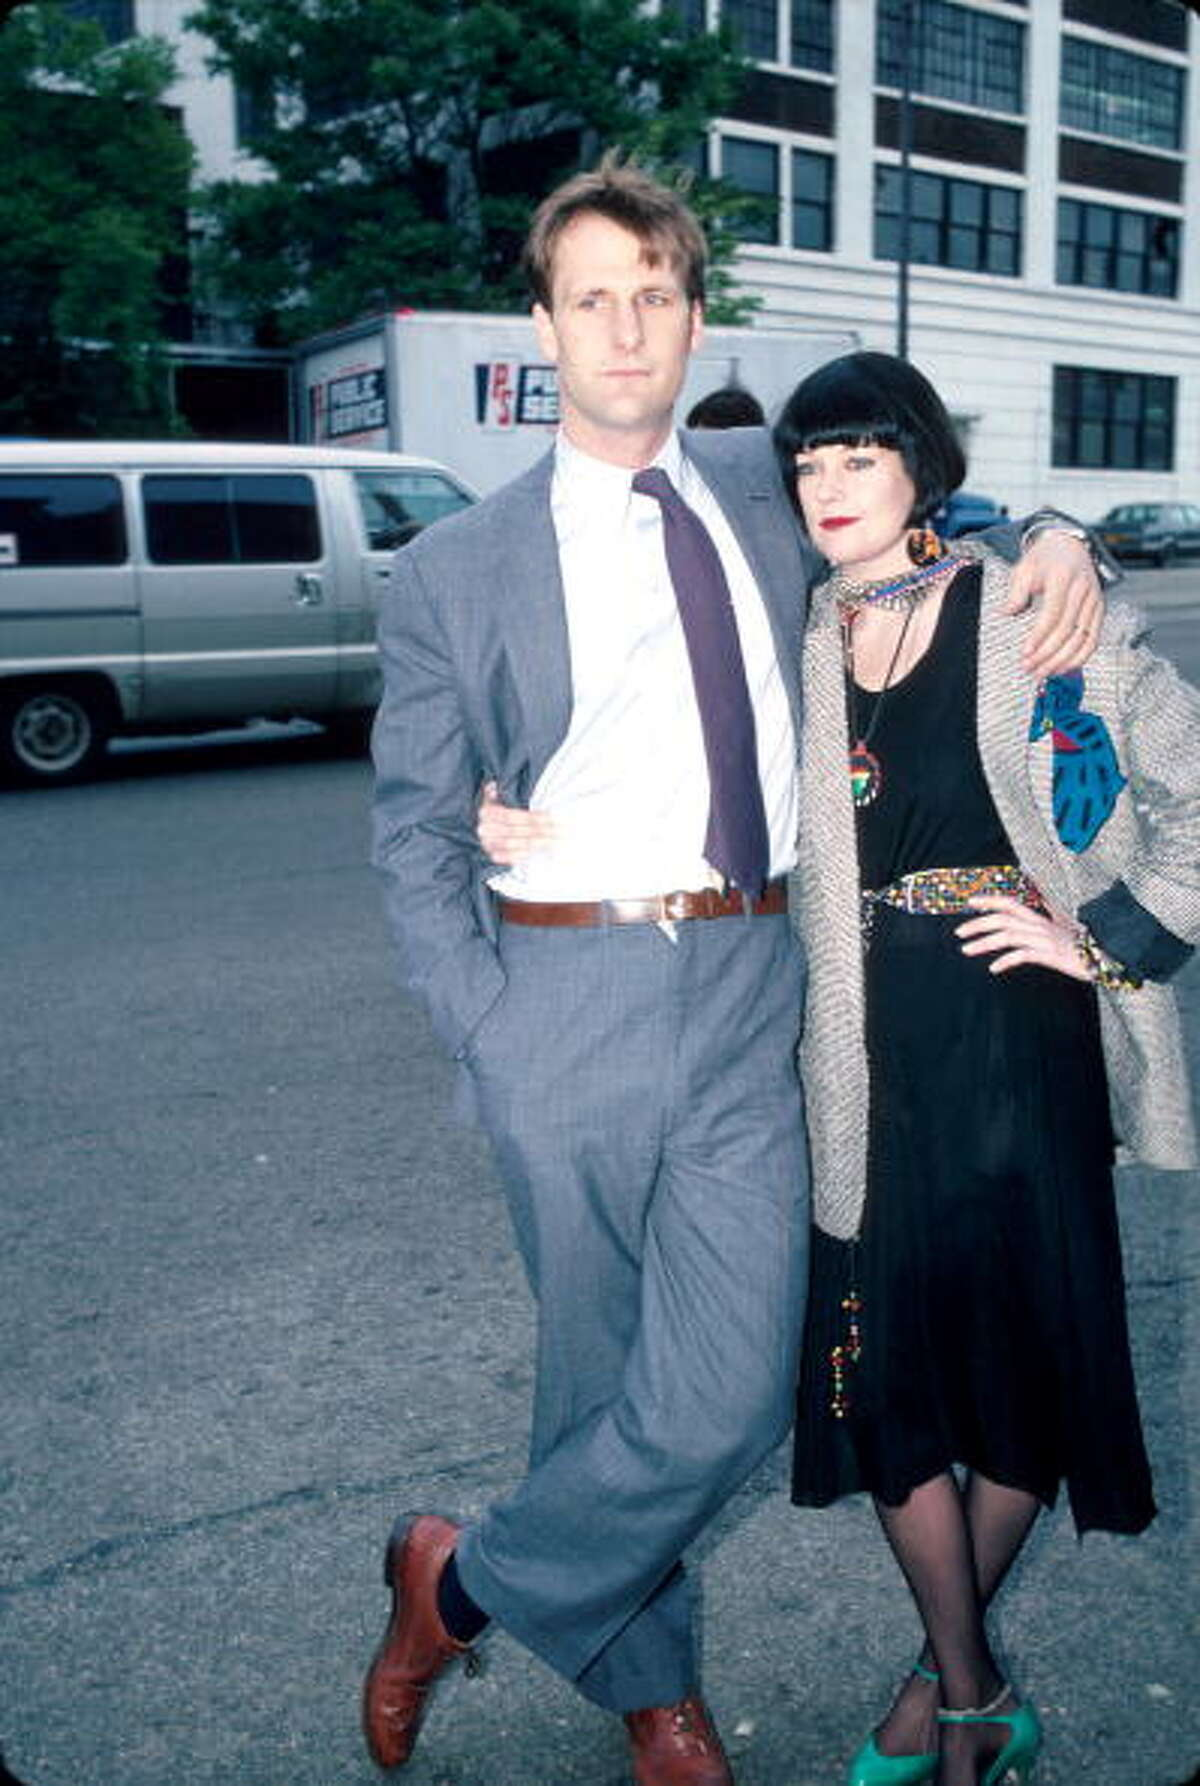 Actors Jeff Daniels and Melanie Griffith shooting their film 'Something Wild.' A welcome blast from the 1980s.